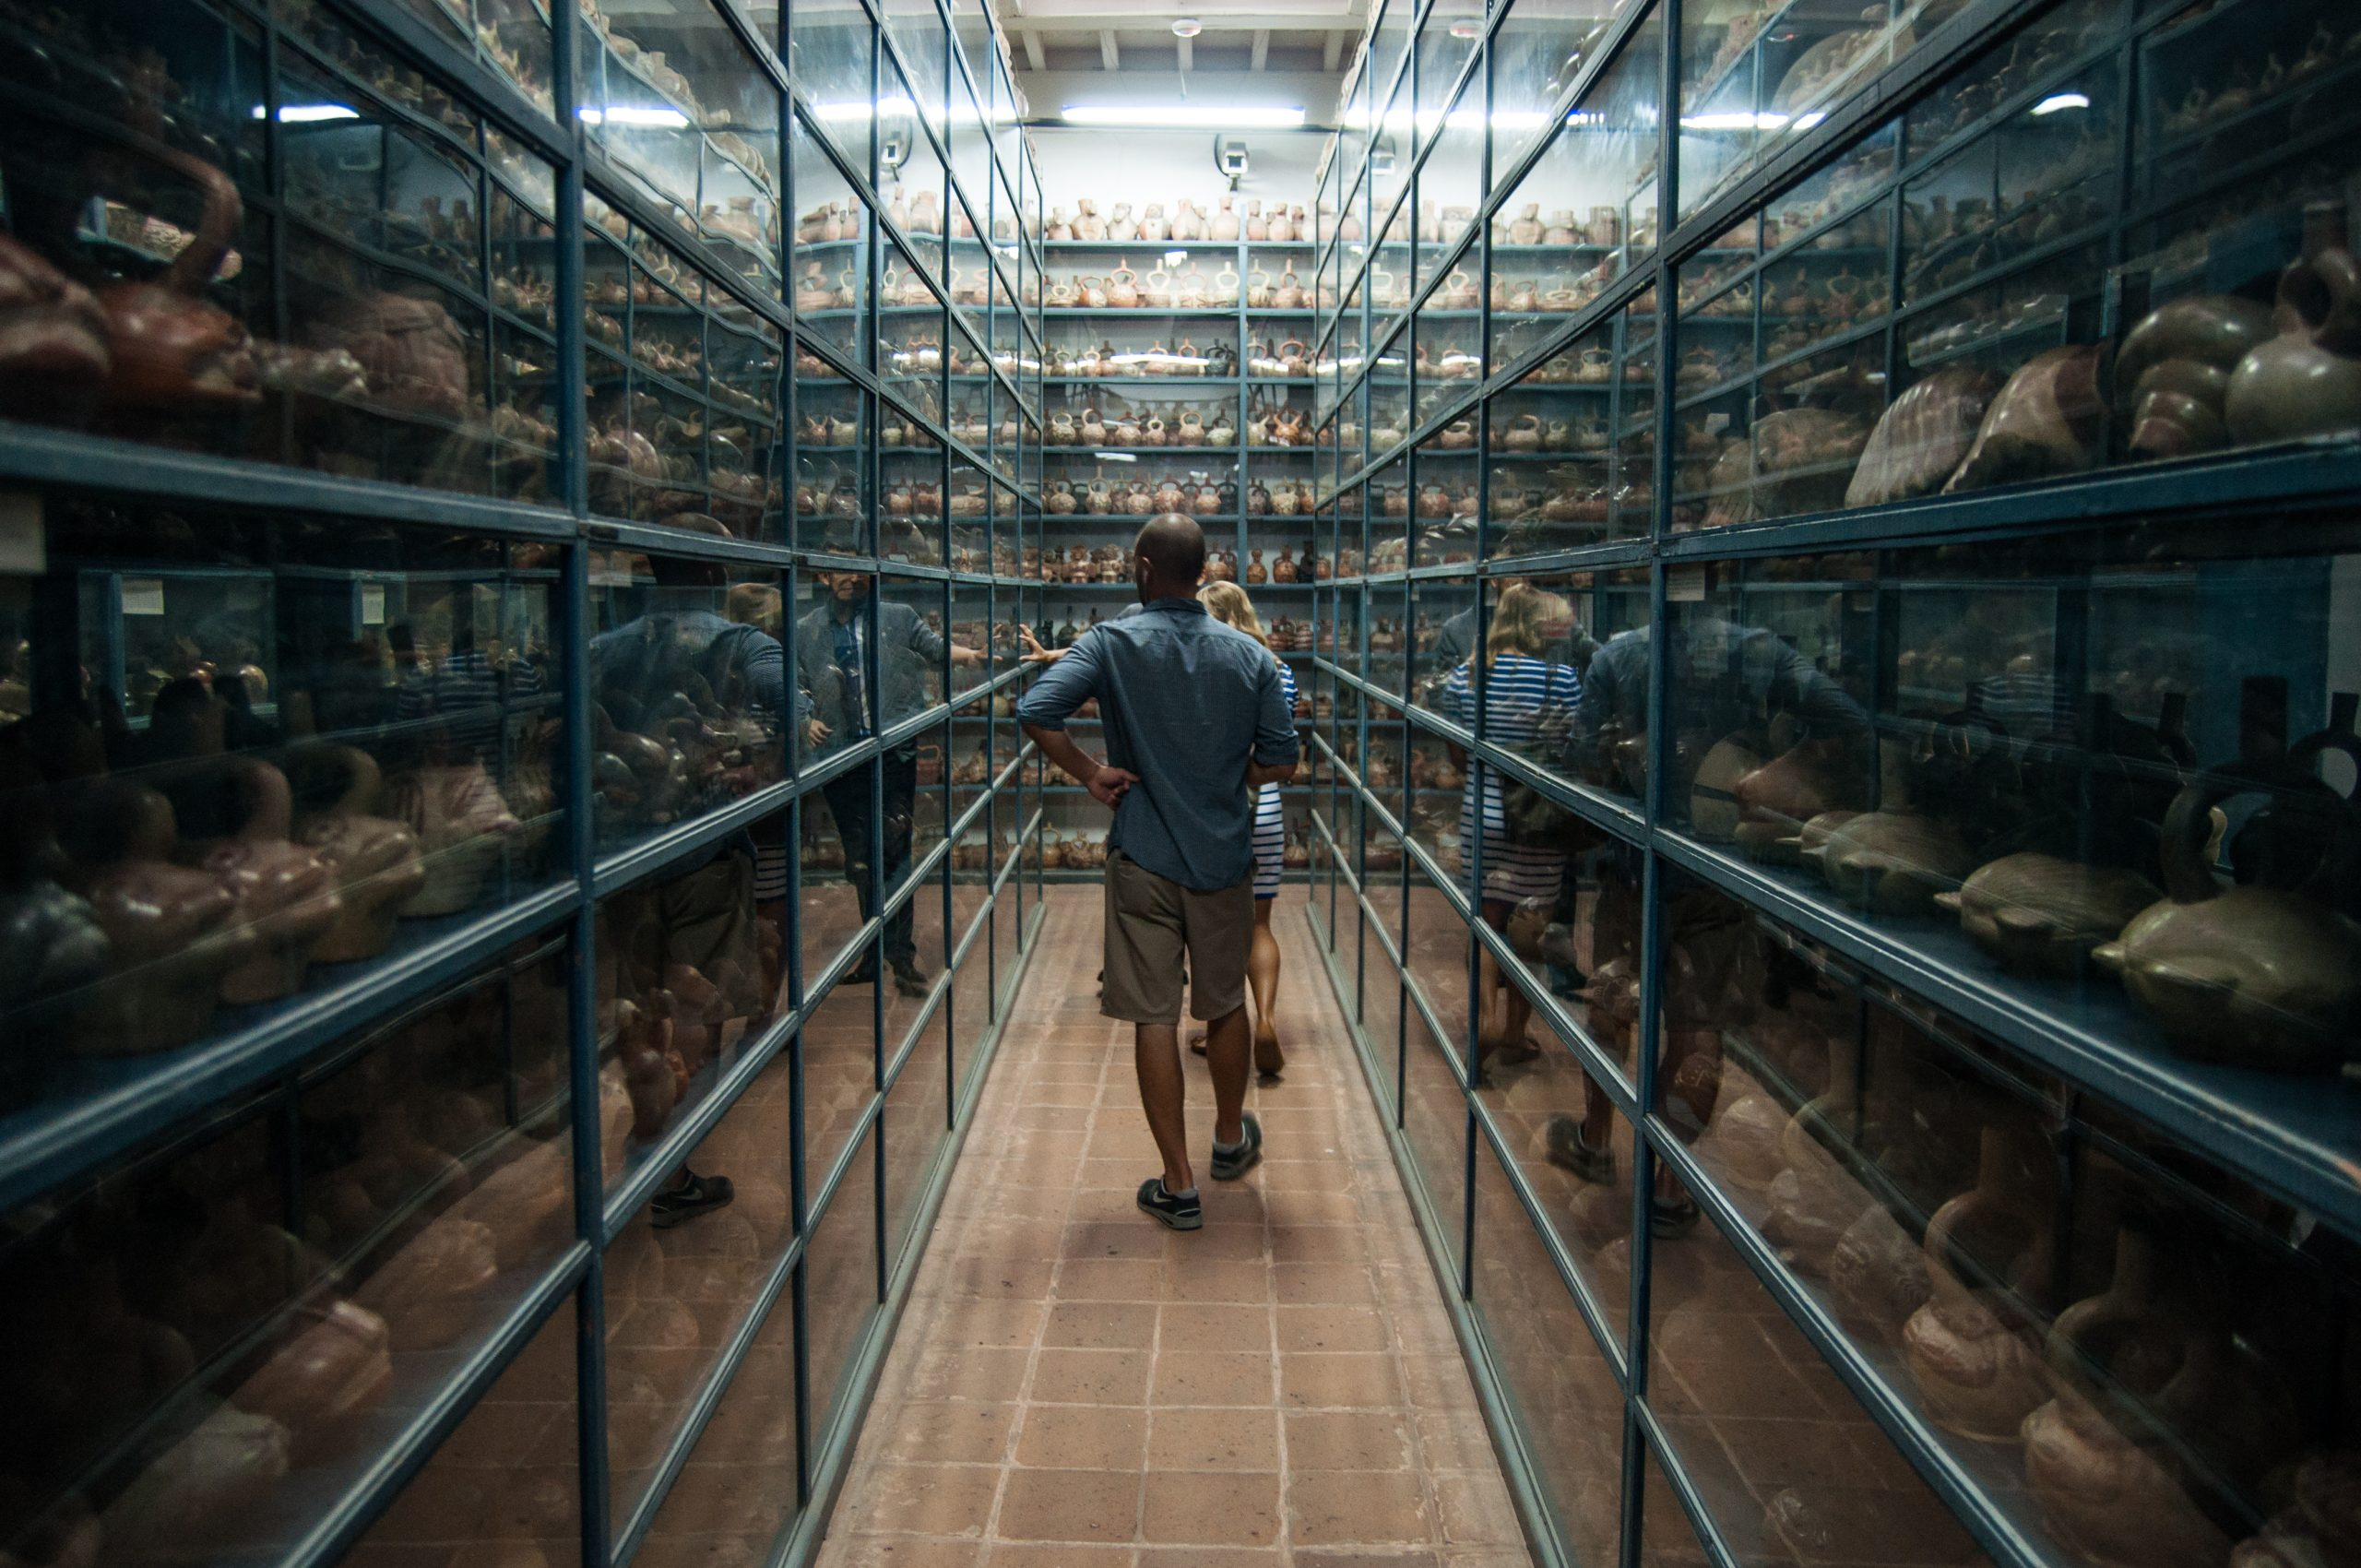 A section of the Larco Museum's vast warehouse